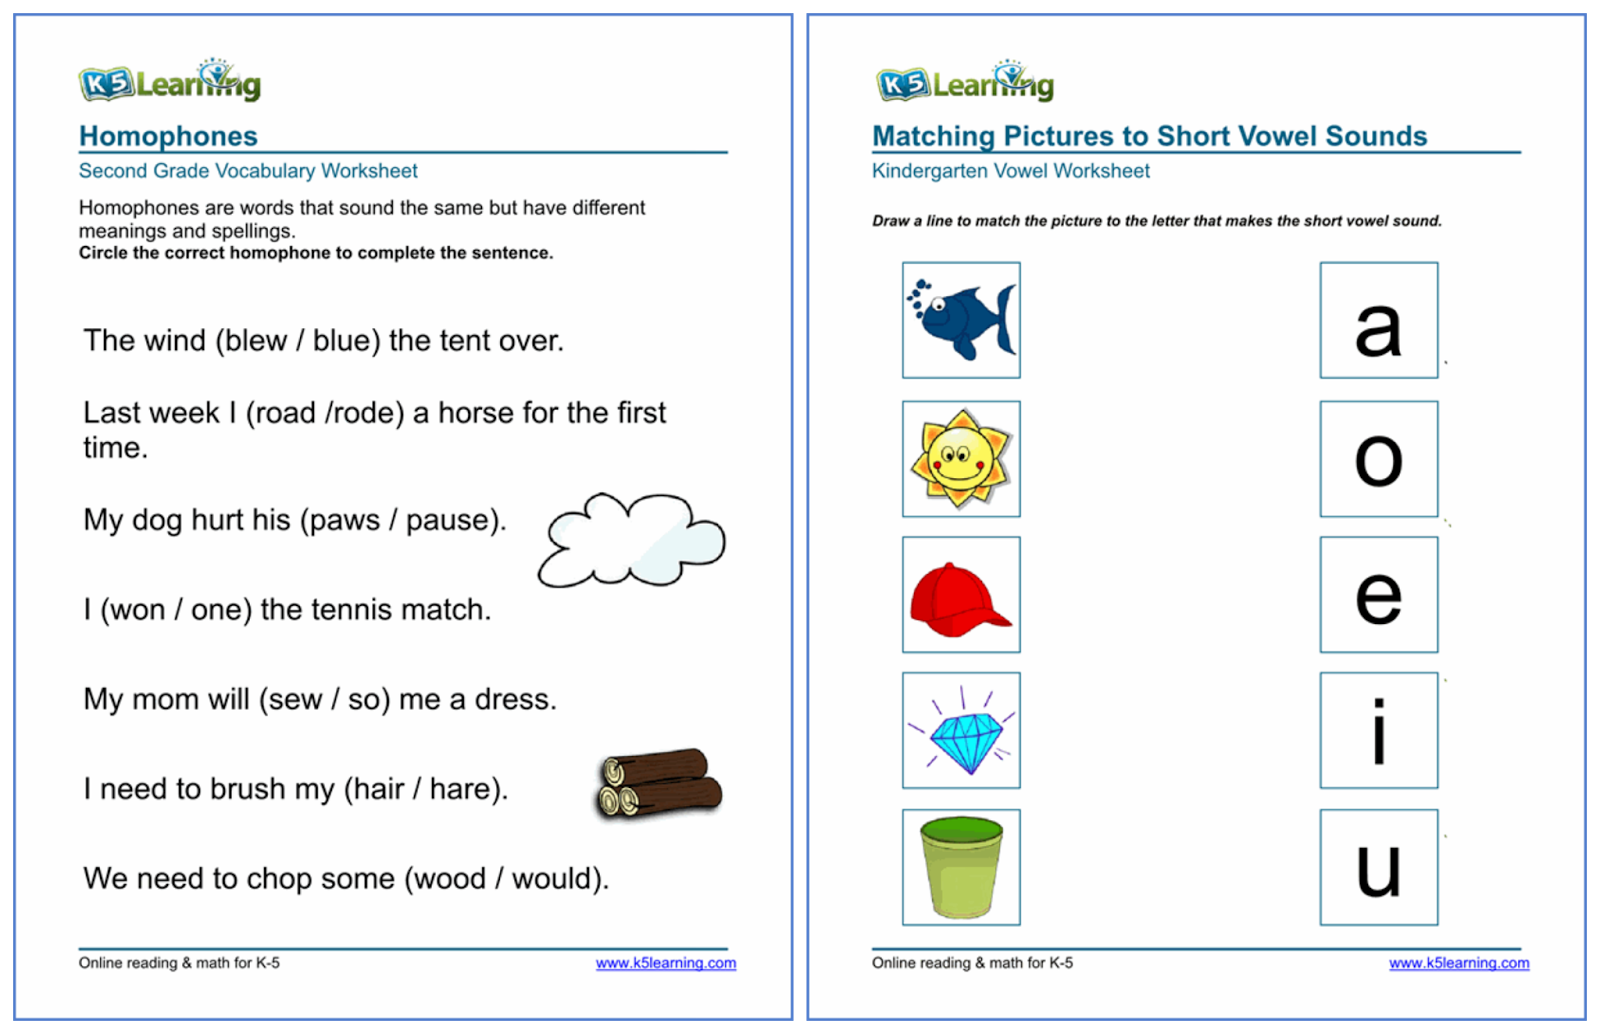 Online Math and Reading Enrichment Program for Kids: K5 Learning ...